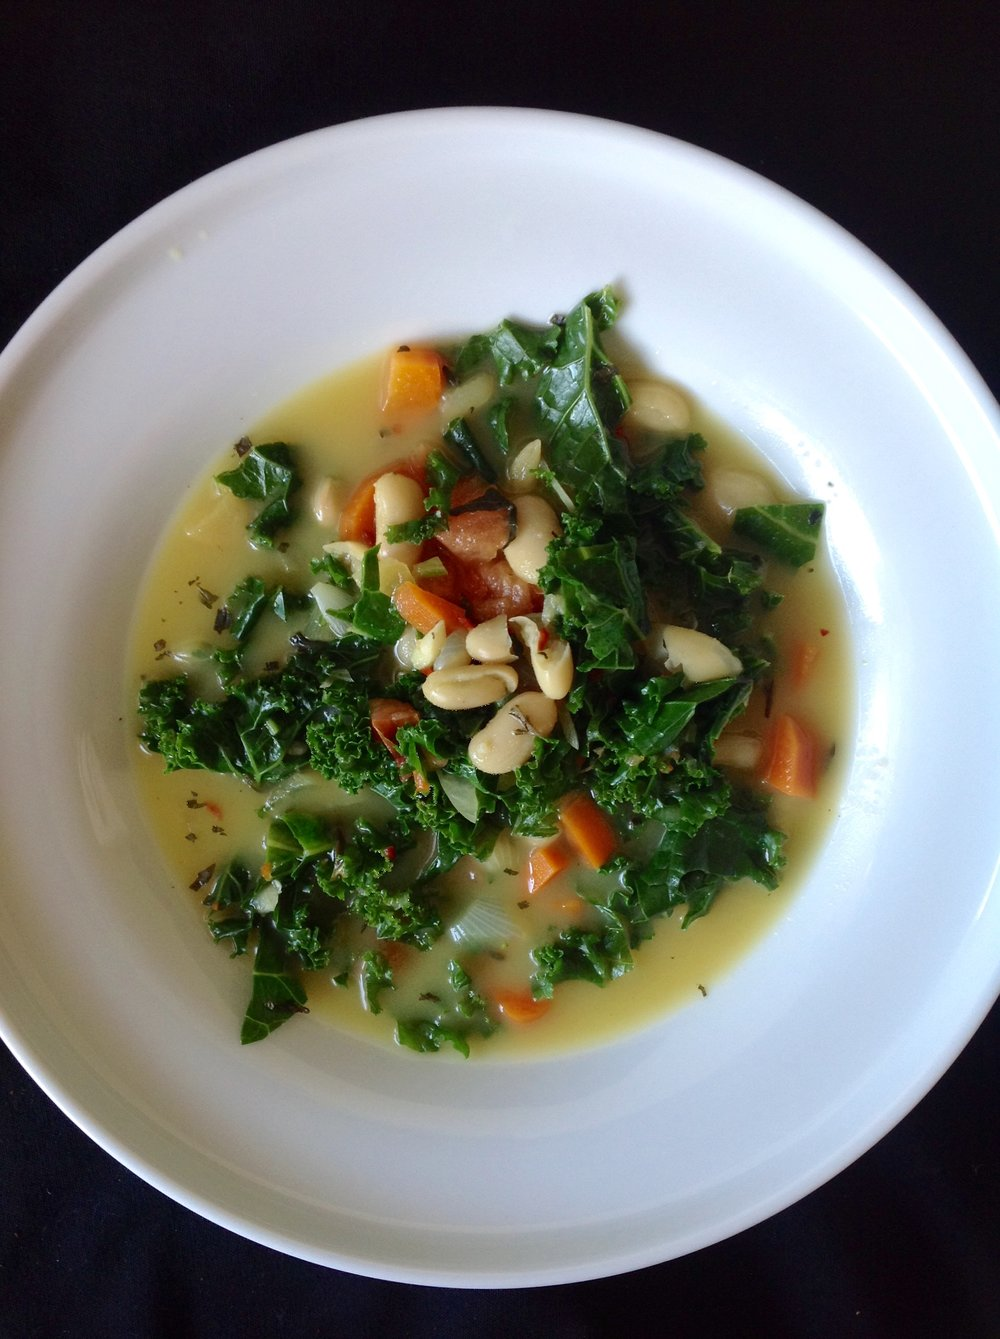 Cavolo Nero Soup - Healthy, Gluten-Free, Oil-Free, Italian, Kale, White Bean, Plant-Based, Cheesy, Hearty, Vegan